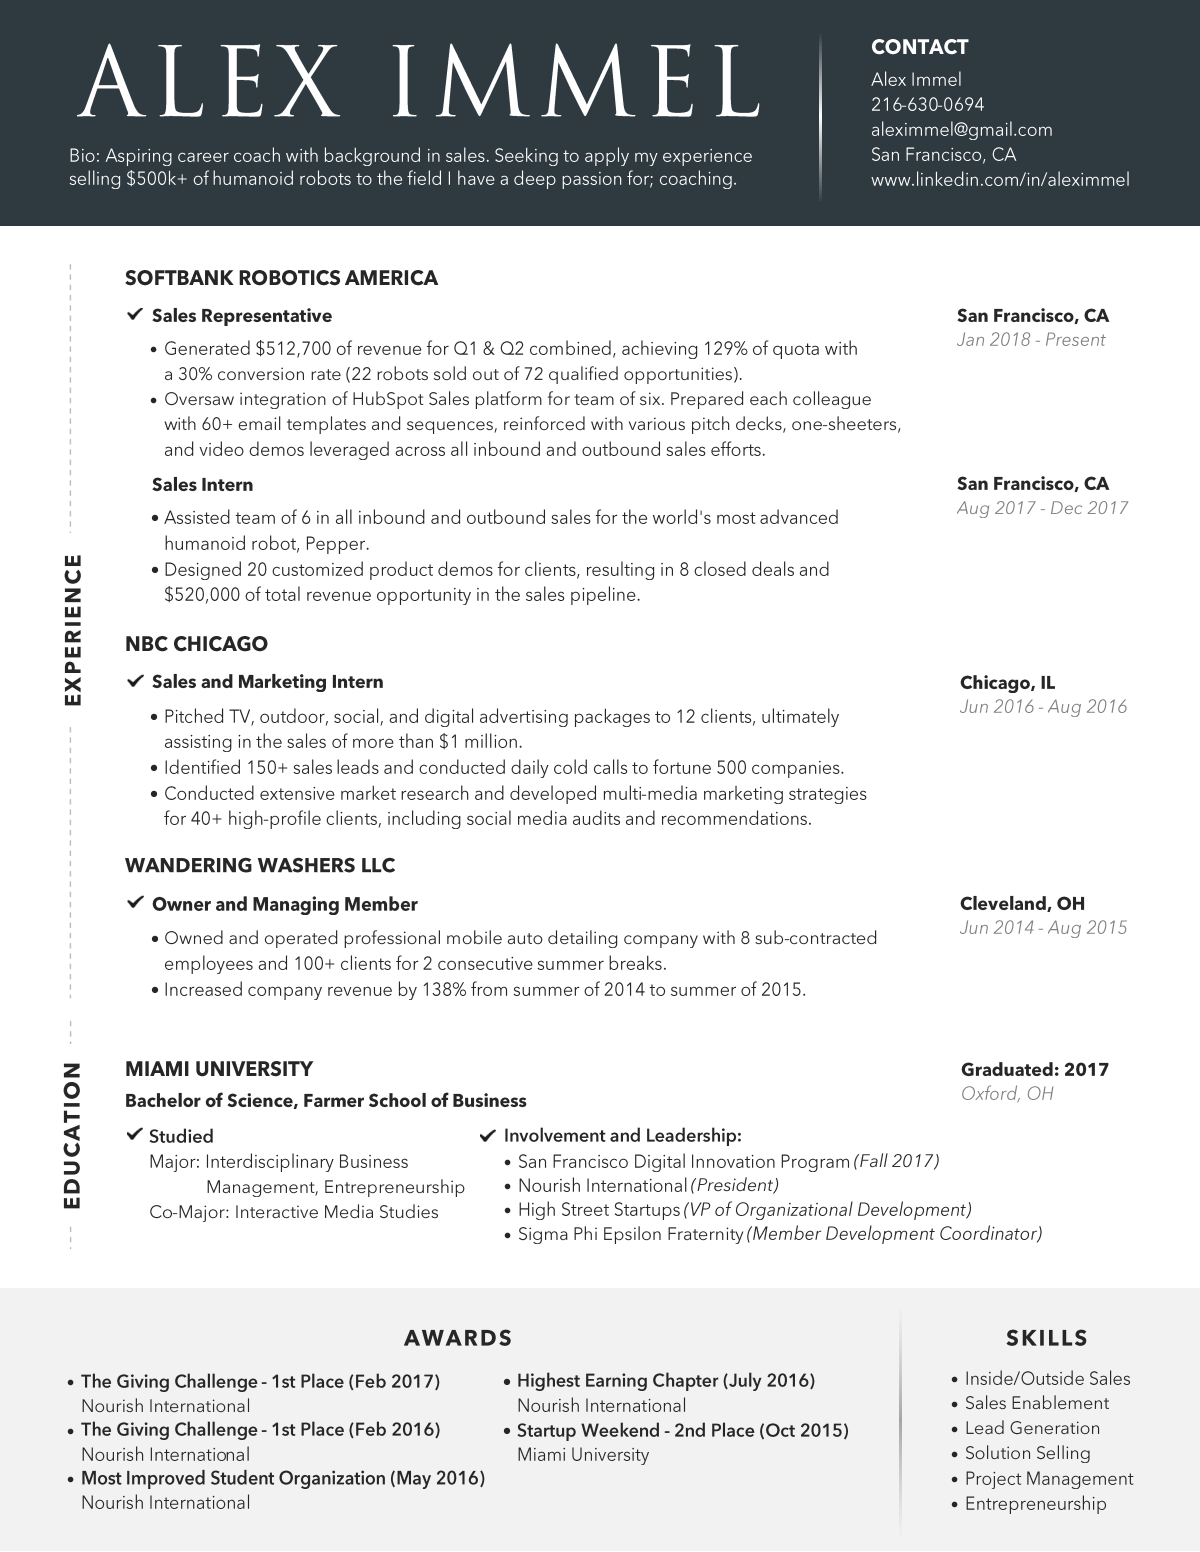 Design a sales-focused resume (content is ready to go)